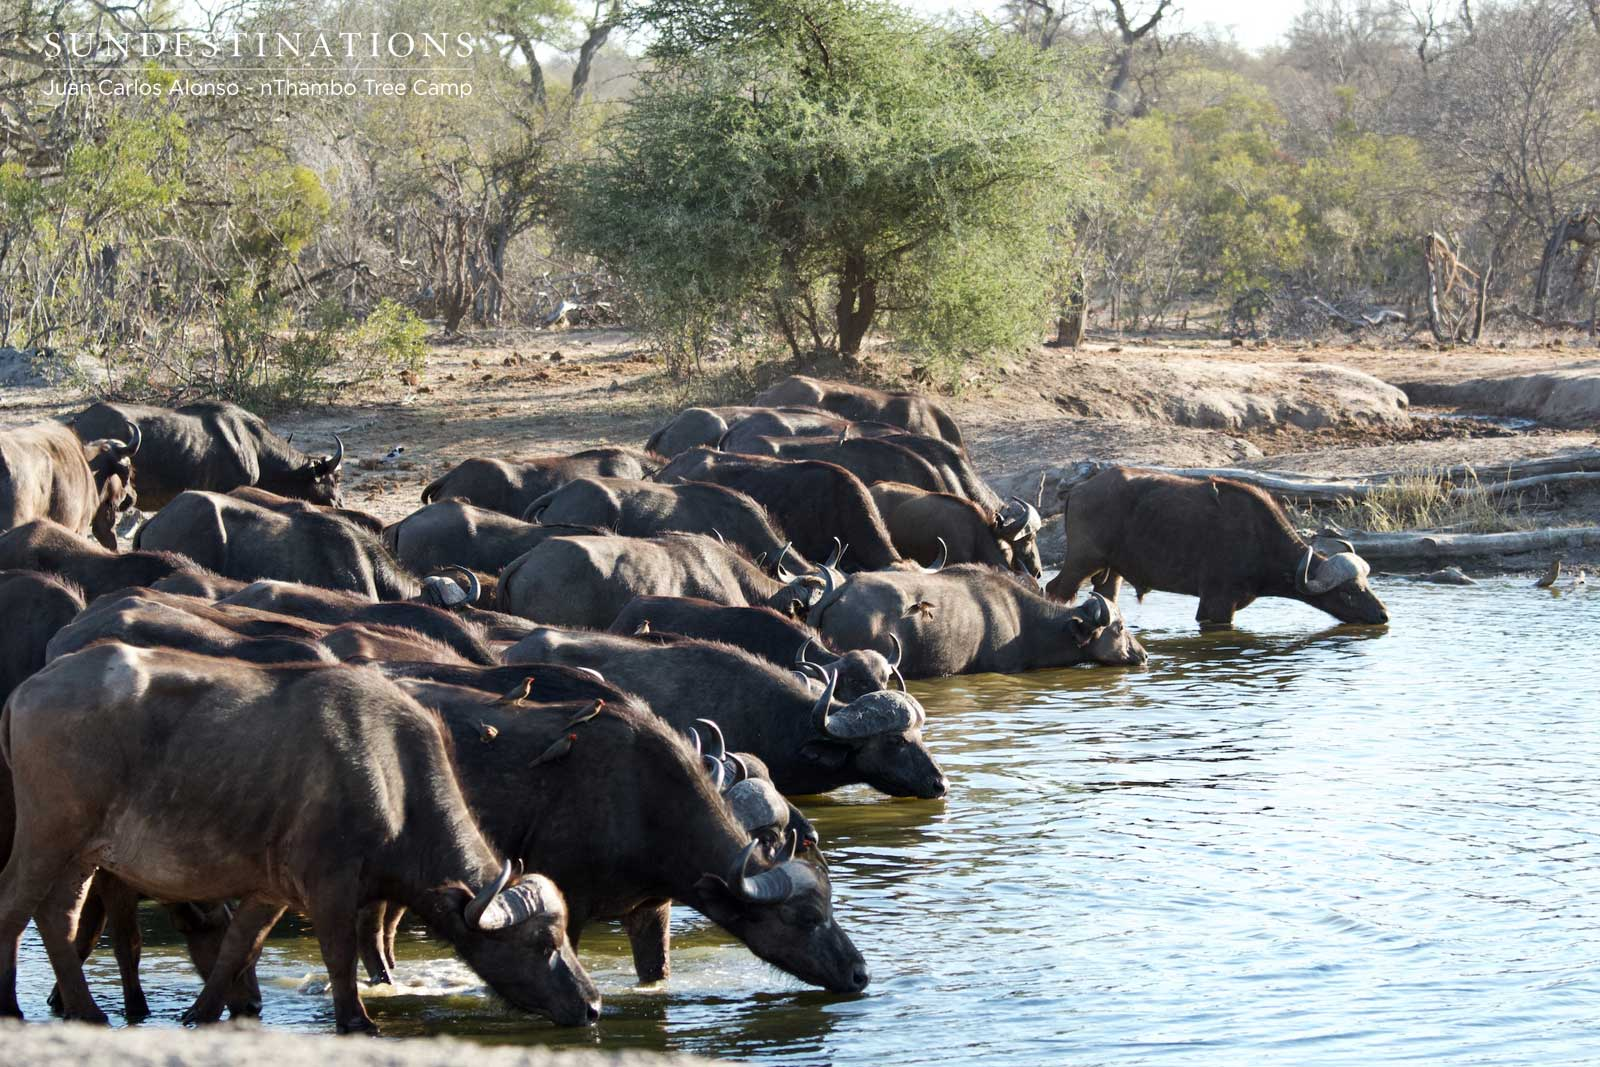 Buffalo Herd at nThambo Tree Camp